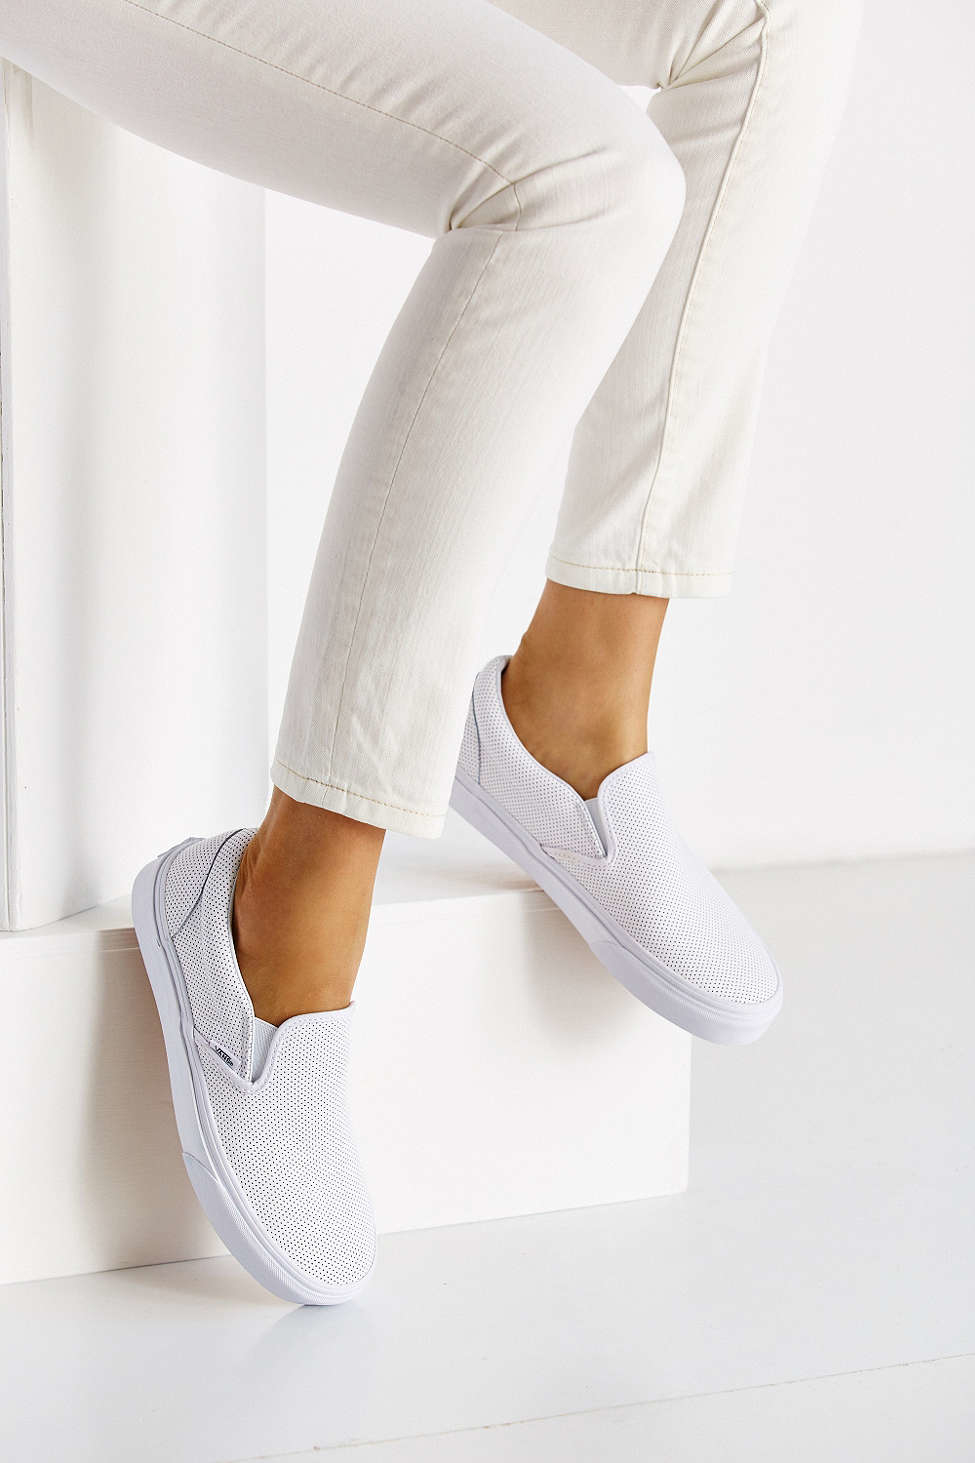 b1359bd1779333 Lyst - Vans Perforated Leather Slip-on Sneaker in White